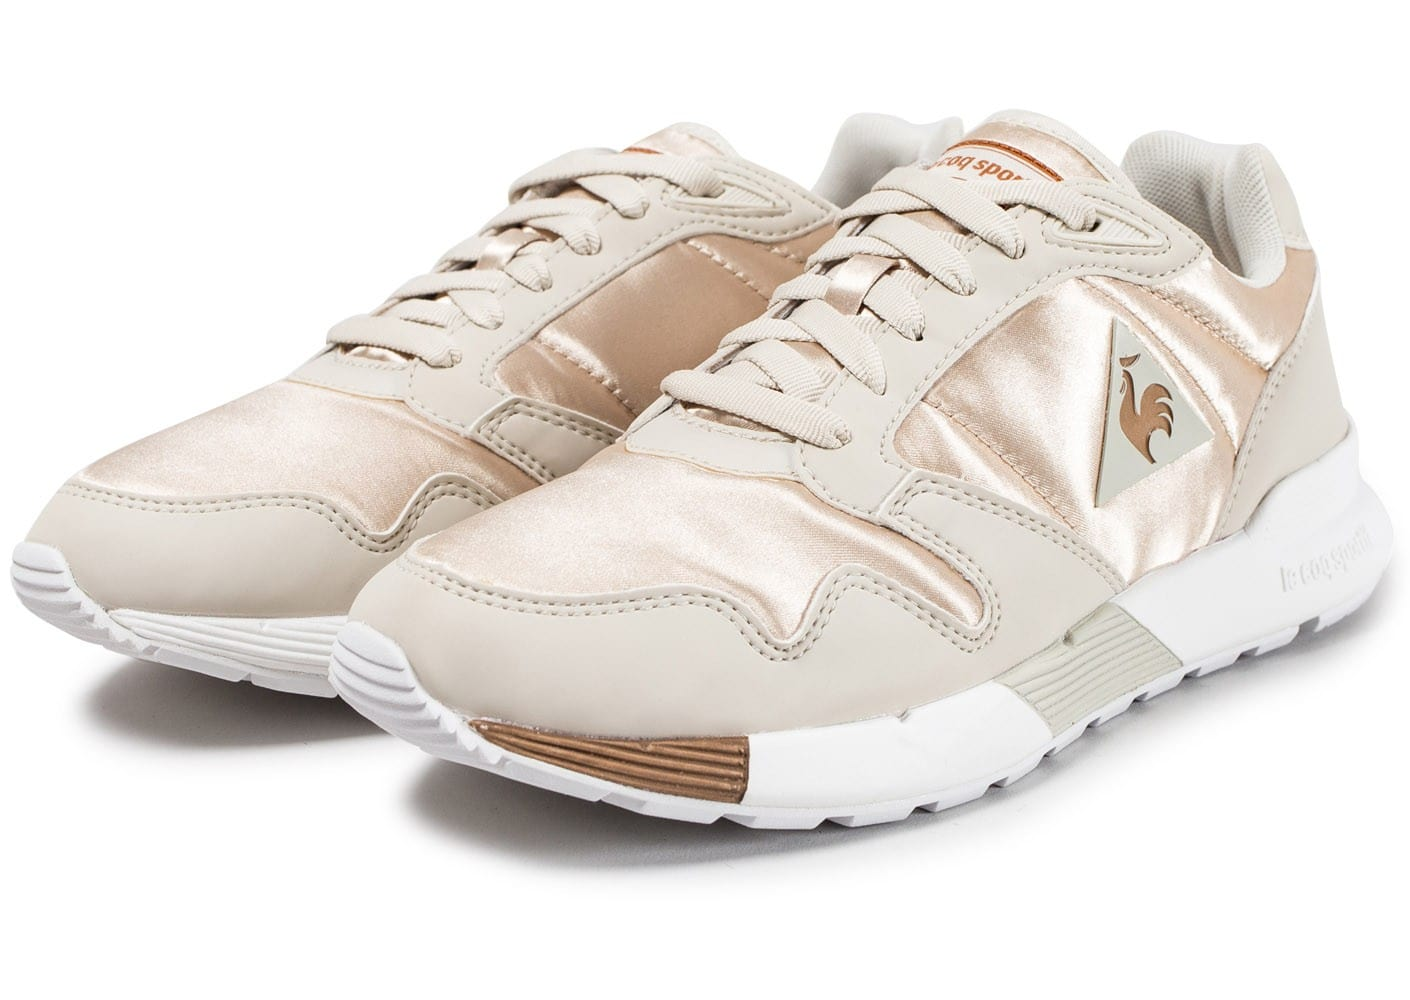 W X Cuivre Chaussures Le Baskets Femme Sportif Coq Omega Satin Yby7vf6g